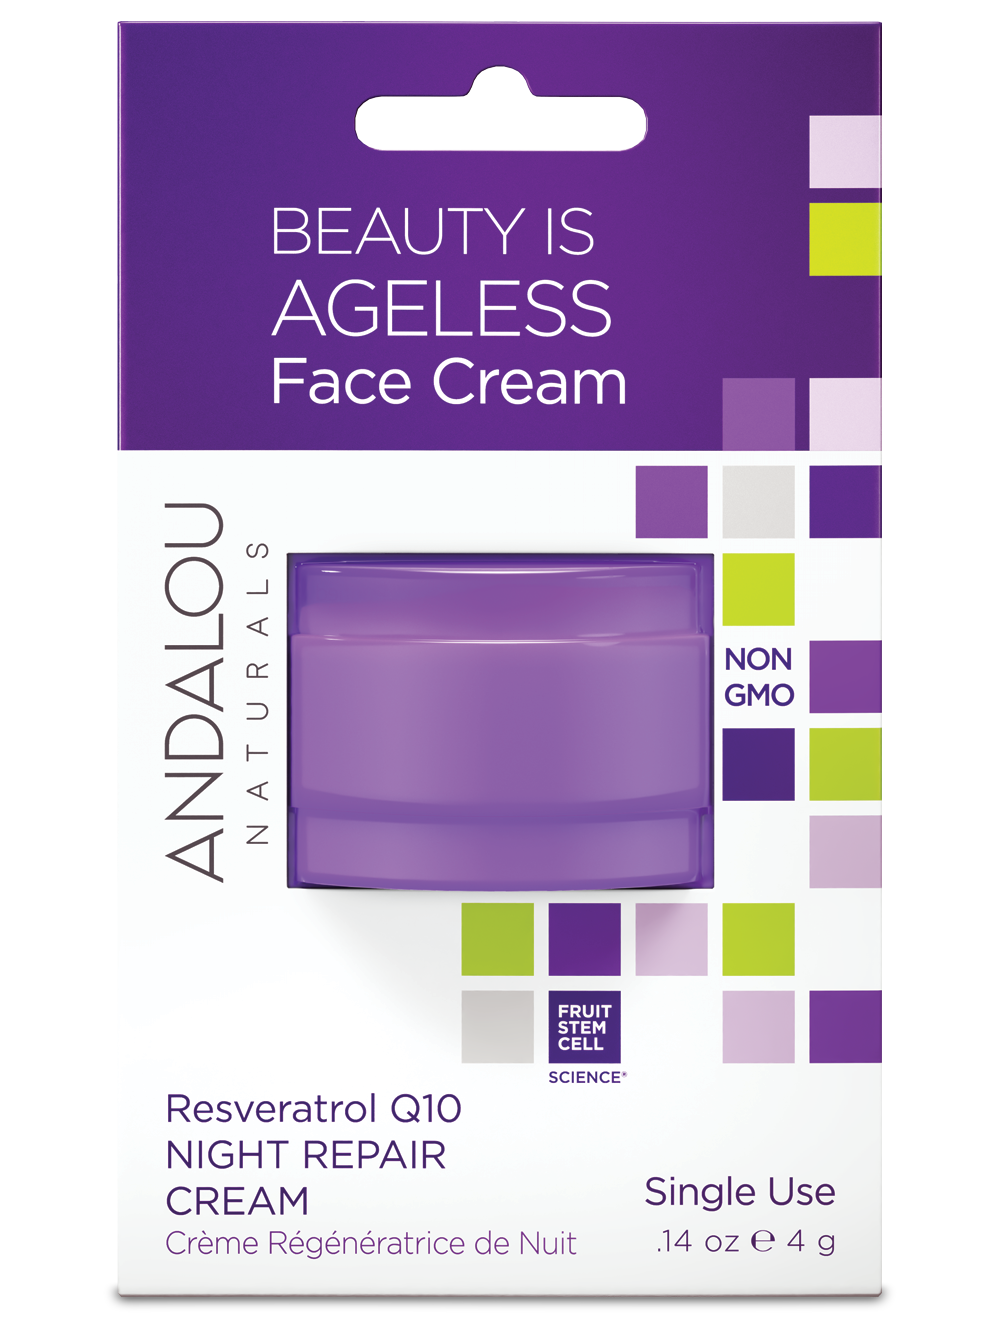 Andalou Naturals Face Cream Pods - Buy One Get One Free